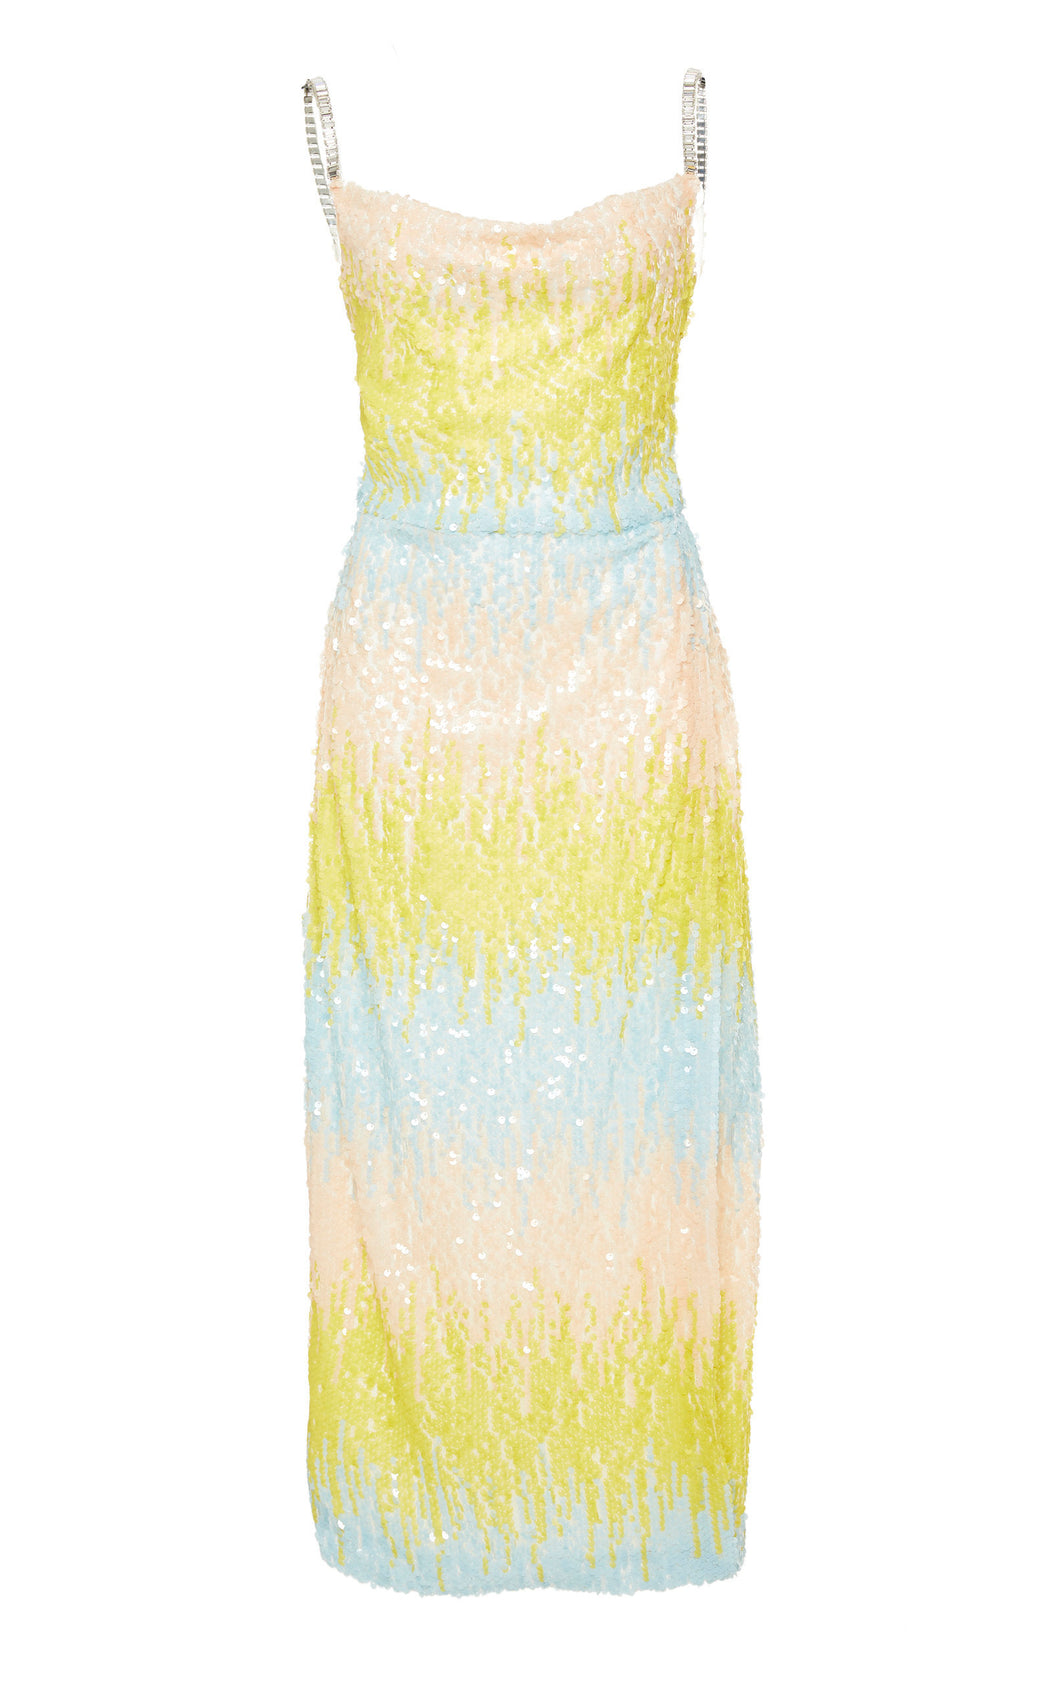 Wentworth Pastel Ombre Sequin Dress